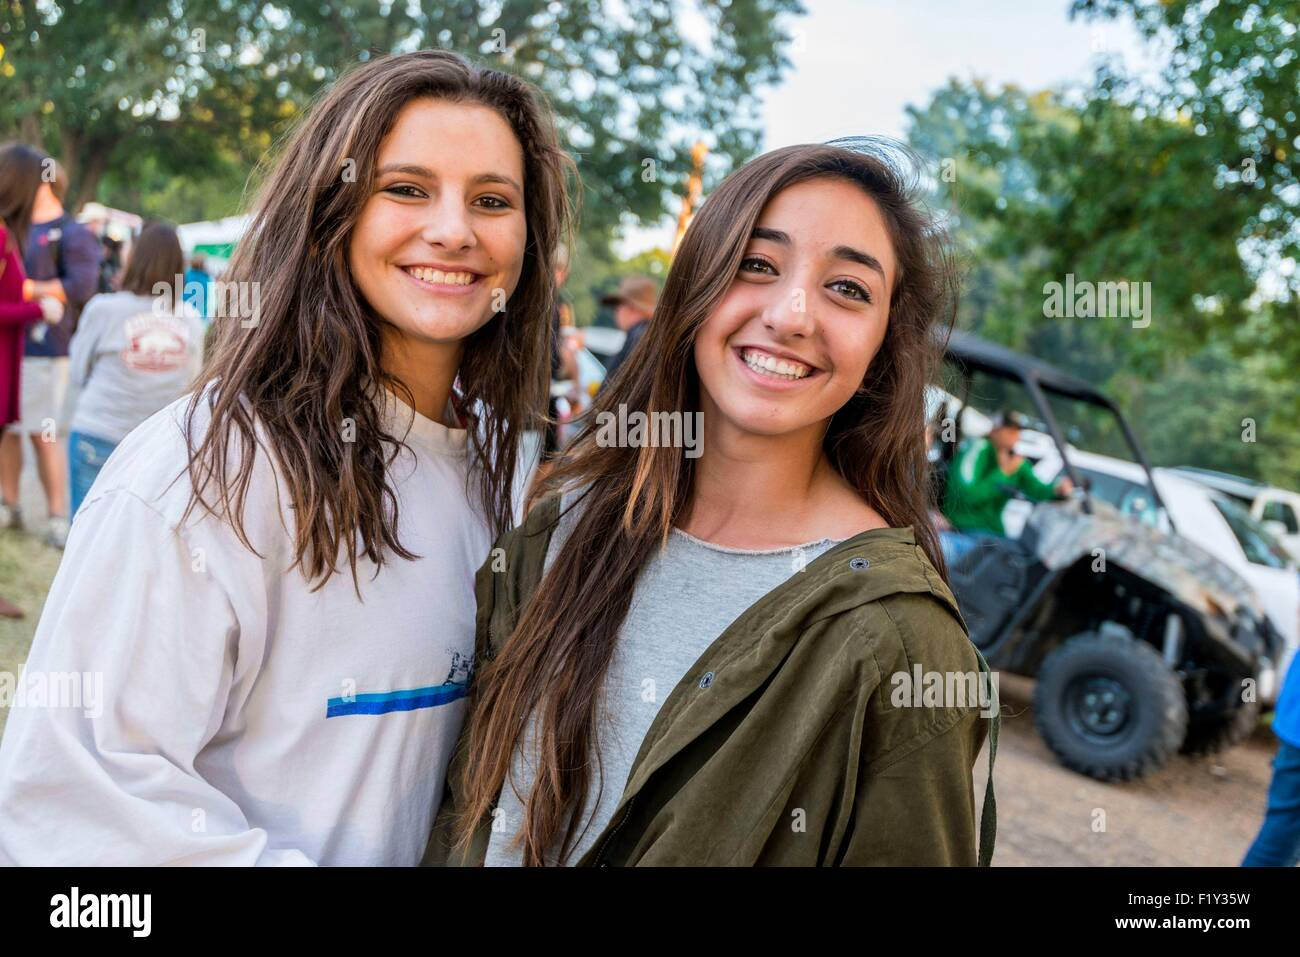 United States, Mississippi, Greenville, Mighty Mississippi Music festival, teenagers - Stock Image